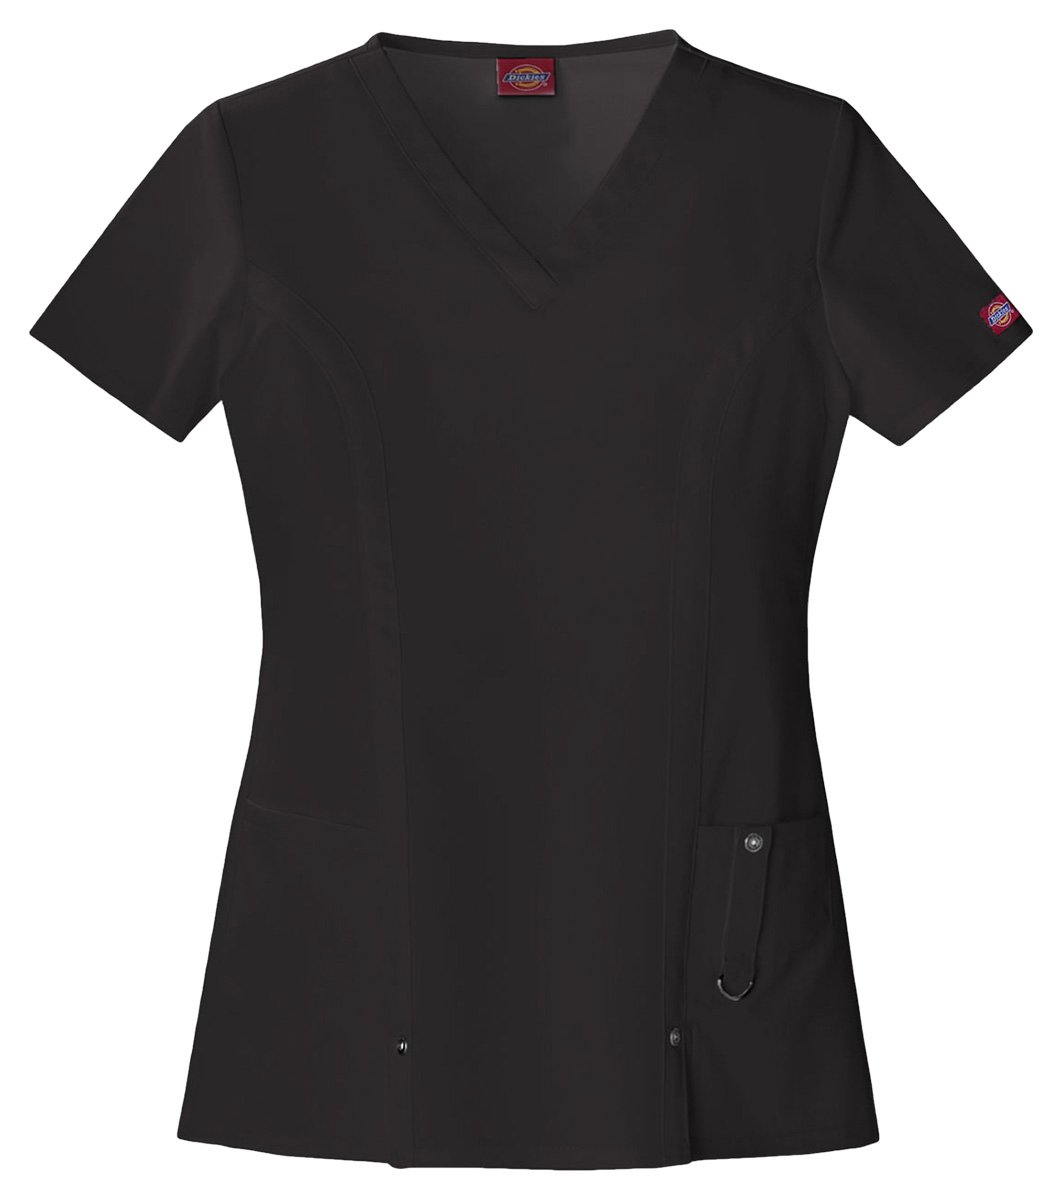 Dickies Women's Classic V-Neck Top_Black_XXX-Large,82851